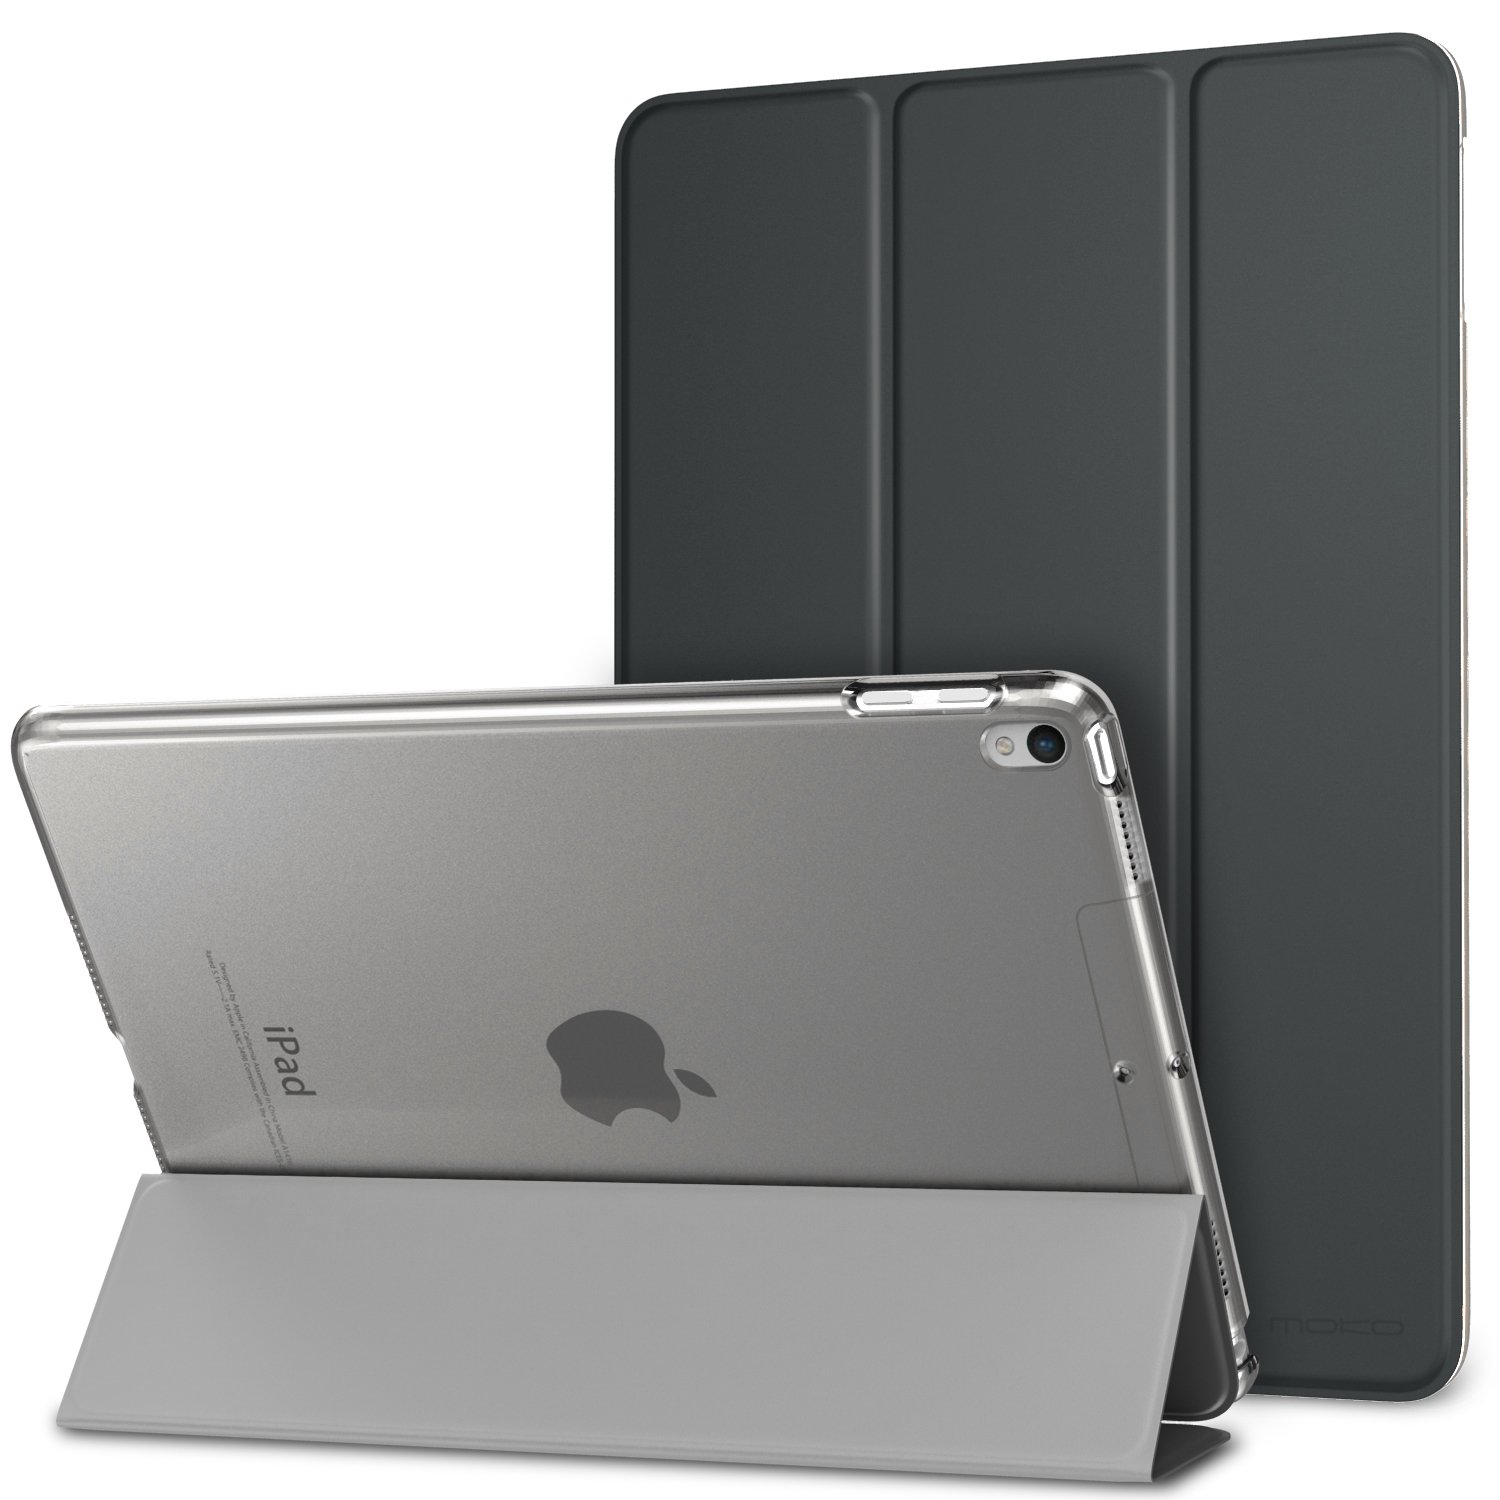 """MoKo Case Fit New iPad Air (3rd Generation) 10.5"""" 2019/iPad Pro 10.5 2017 - Slim Lightweight Smart Shell Stand Cover with Translucent Frosted Back Protector - Space Gray (Auto Wake/Sleep)"""